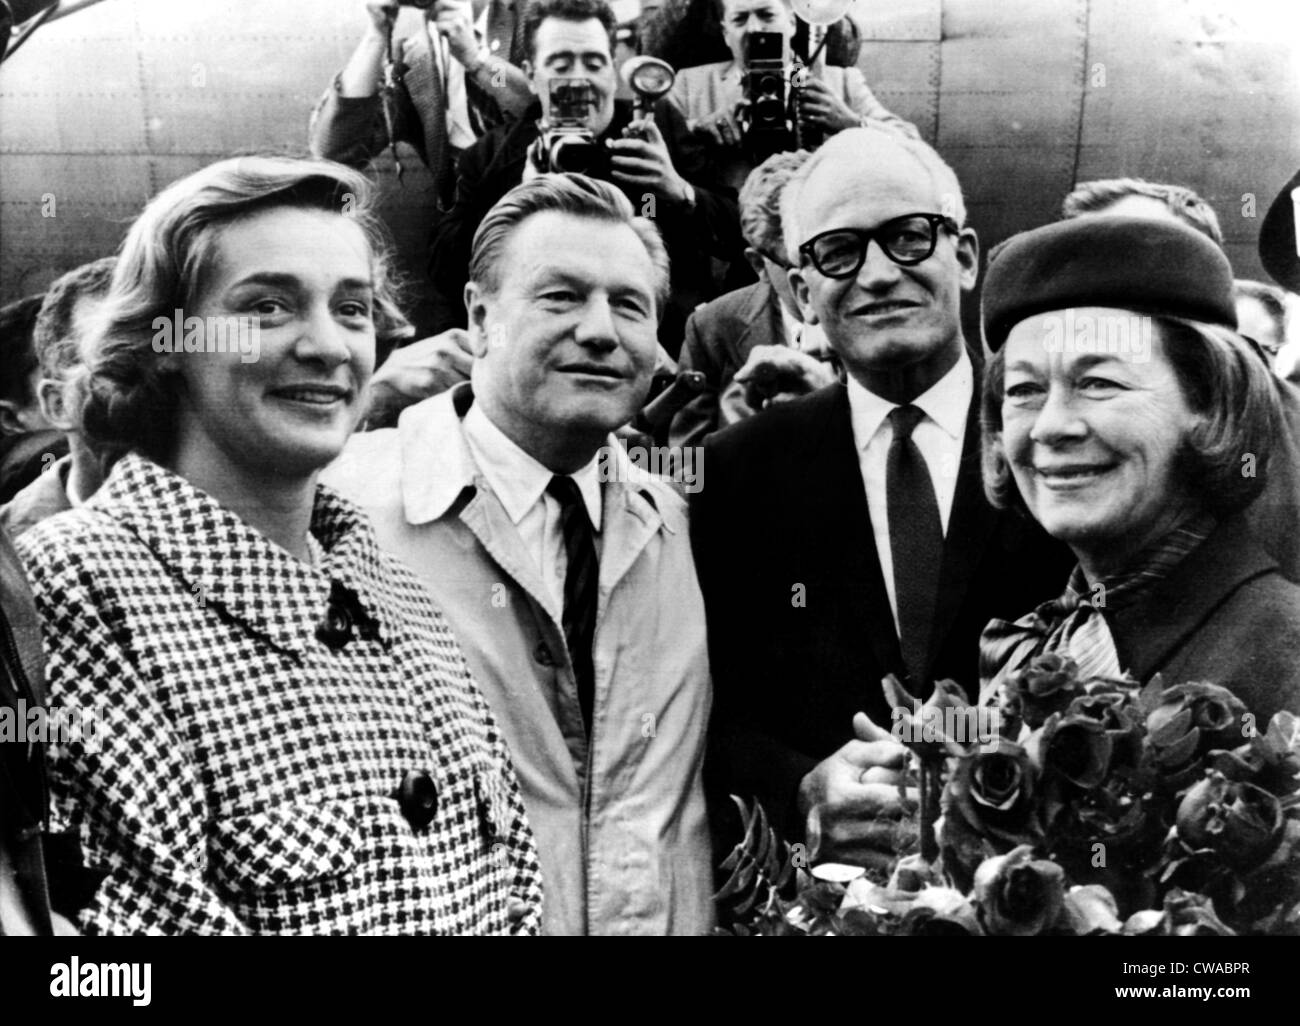 Barry Goldwater (2nd from right), Mrs. Nelson Rockefeller, Gov. Nelson Rockefeller, Goldwater, Mrs. Barry Goldwater, - Stock Image